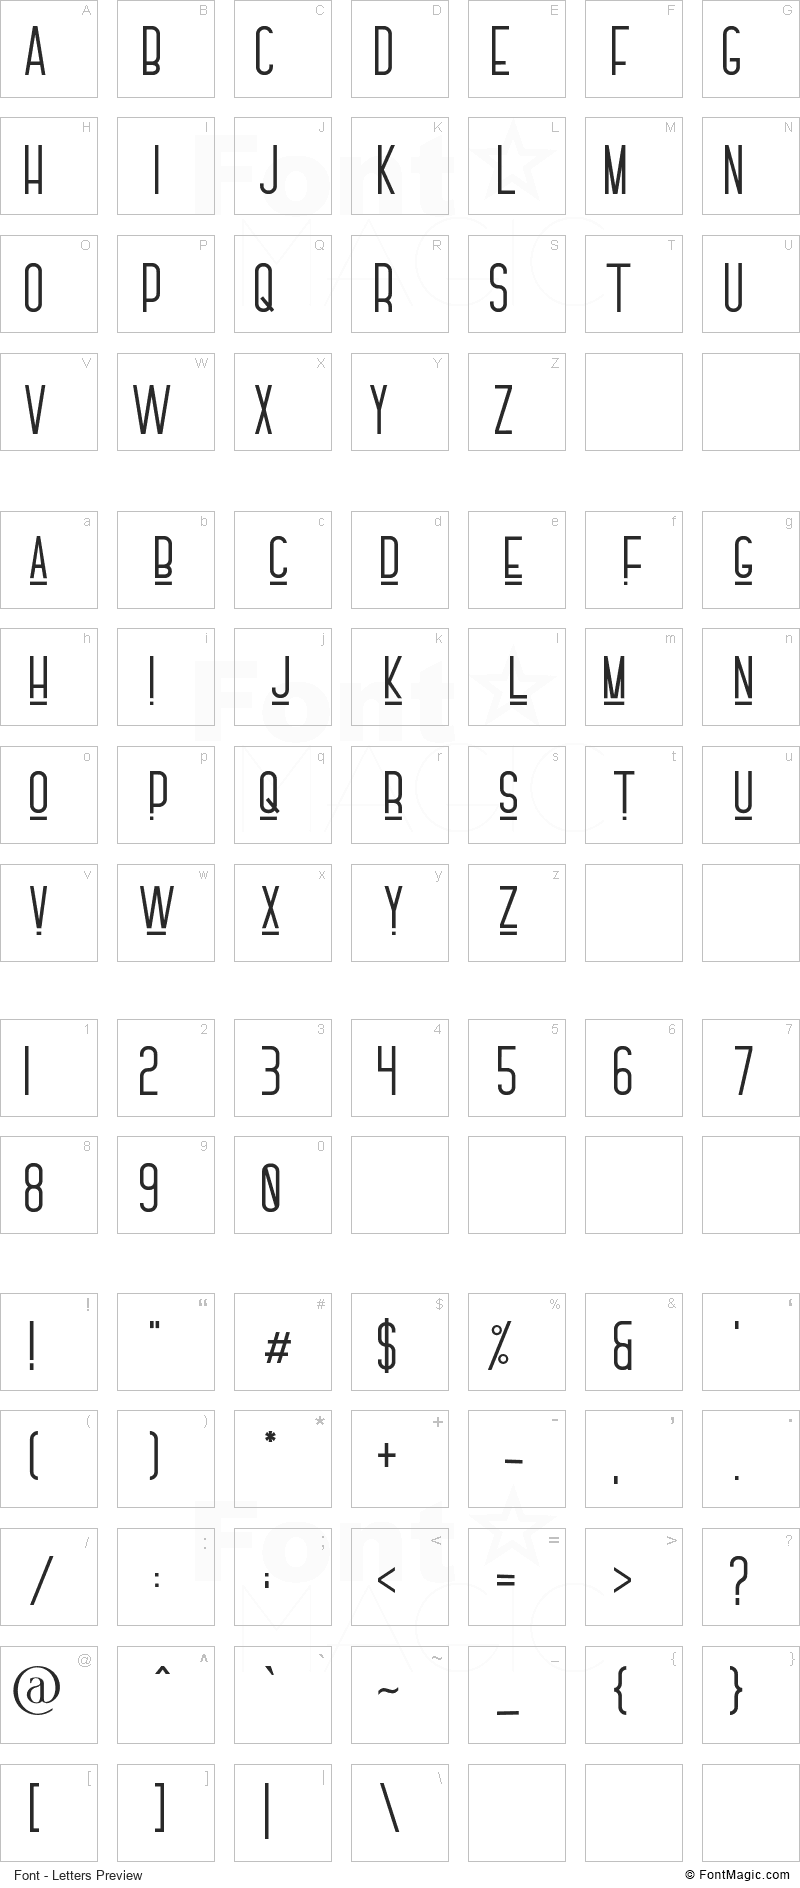 Fóntana Font - All Latters Preview Chart